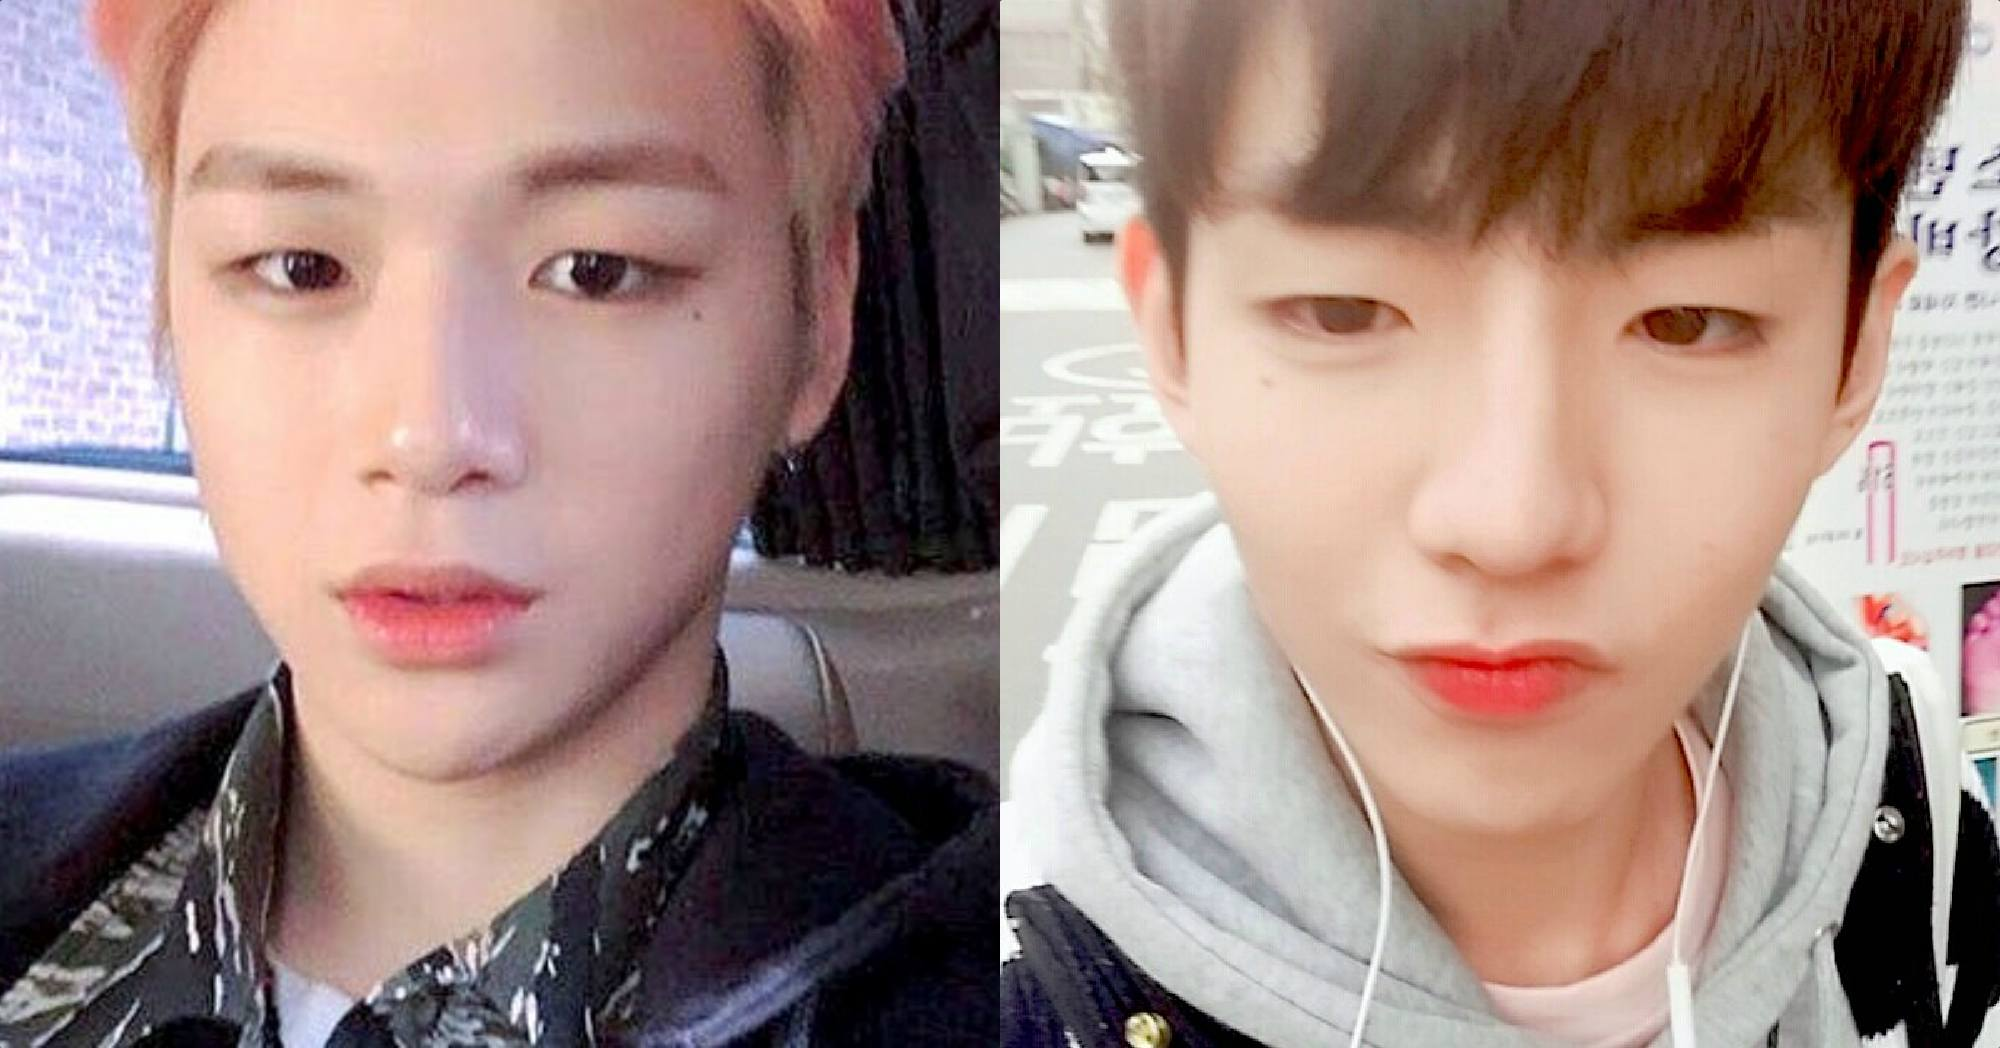 Produce 101 Will Take Action Against Contestants Like Daniel Kang and Kim Dongbin